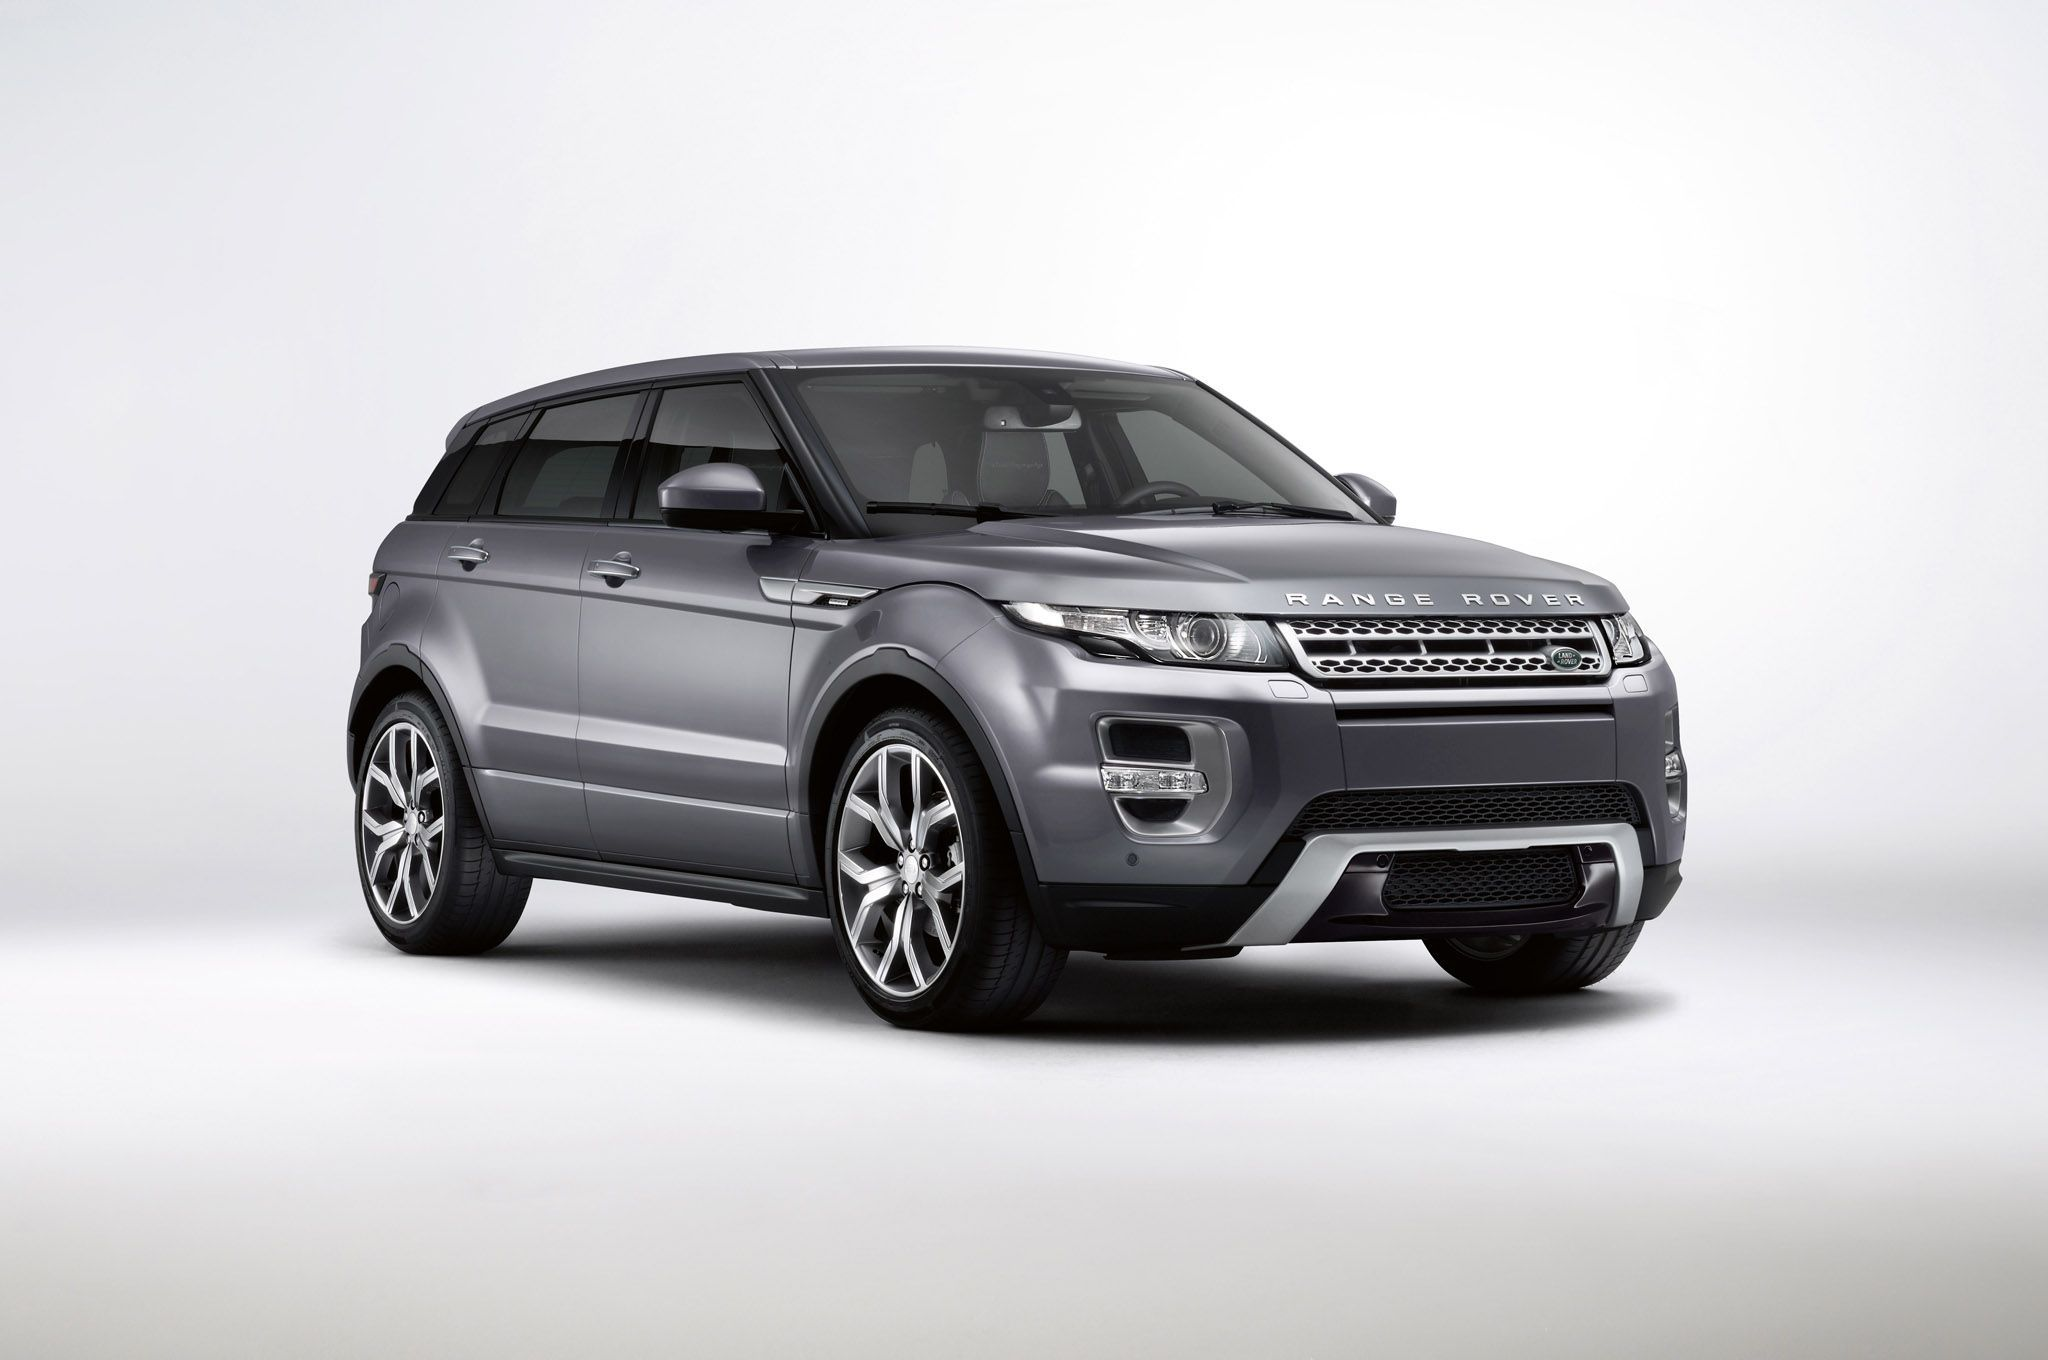 Range rover sport svr usspec cars all road wallpaper 1024 575 range rover sport wallpapers